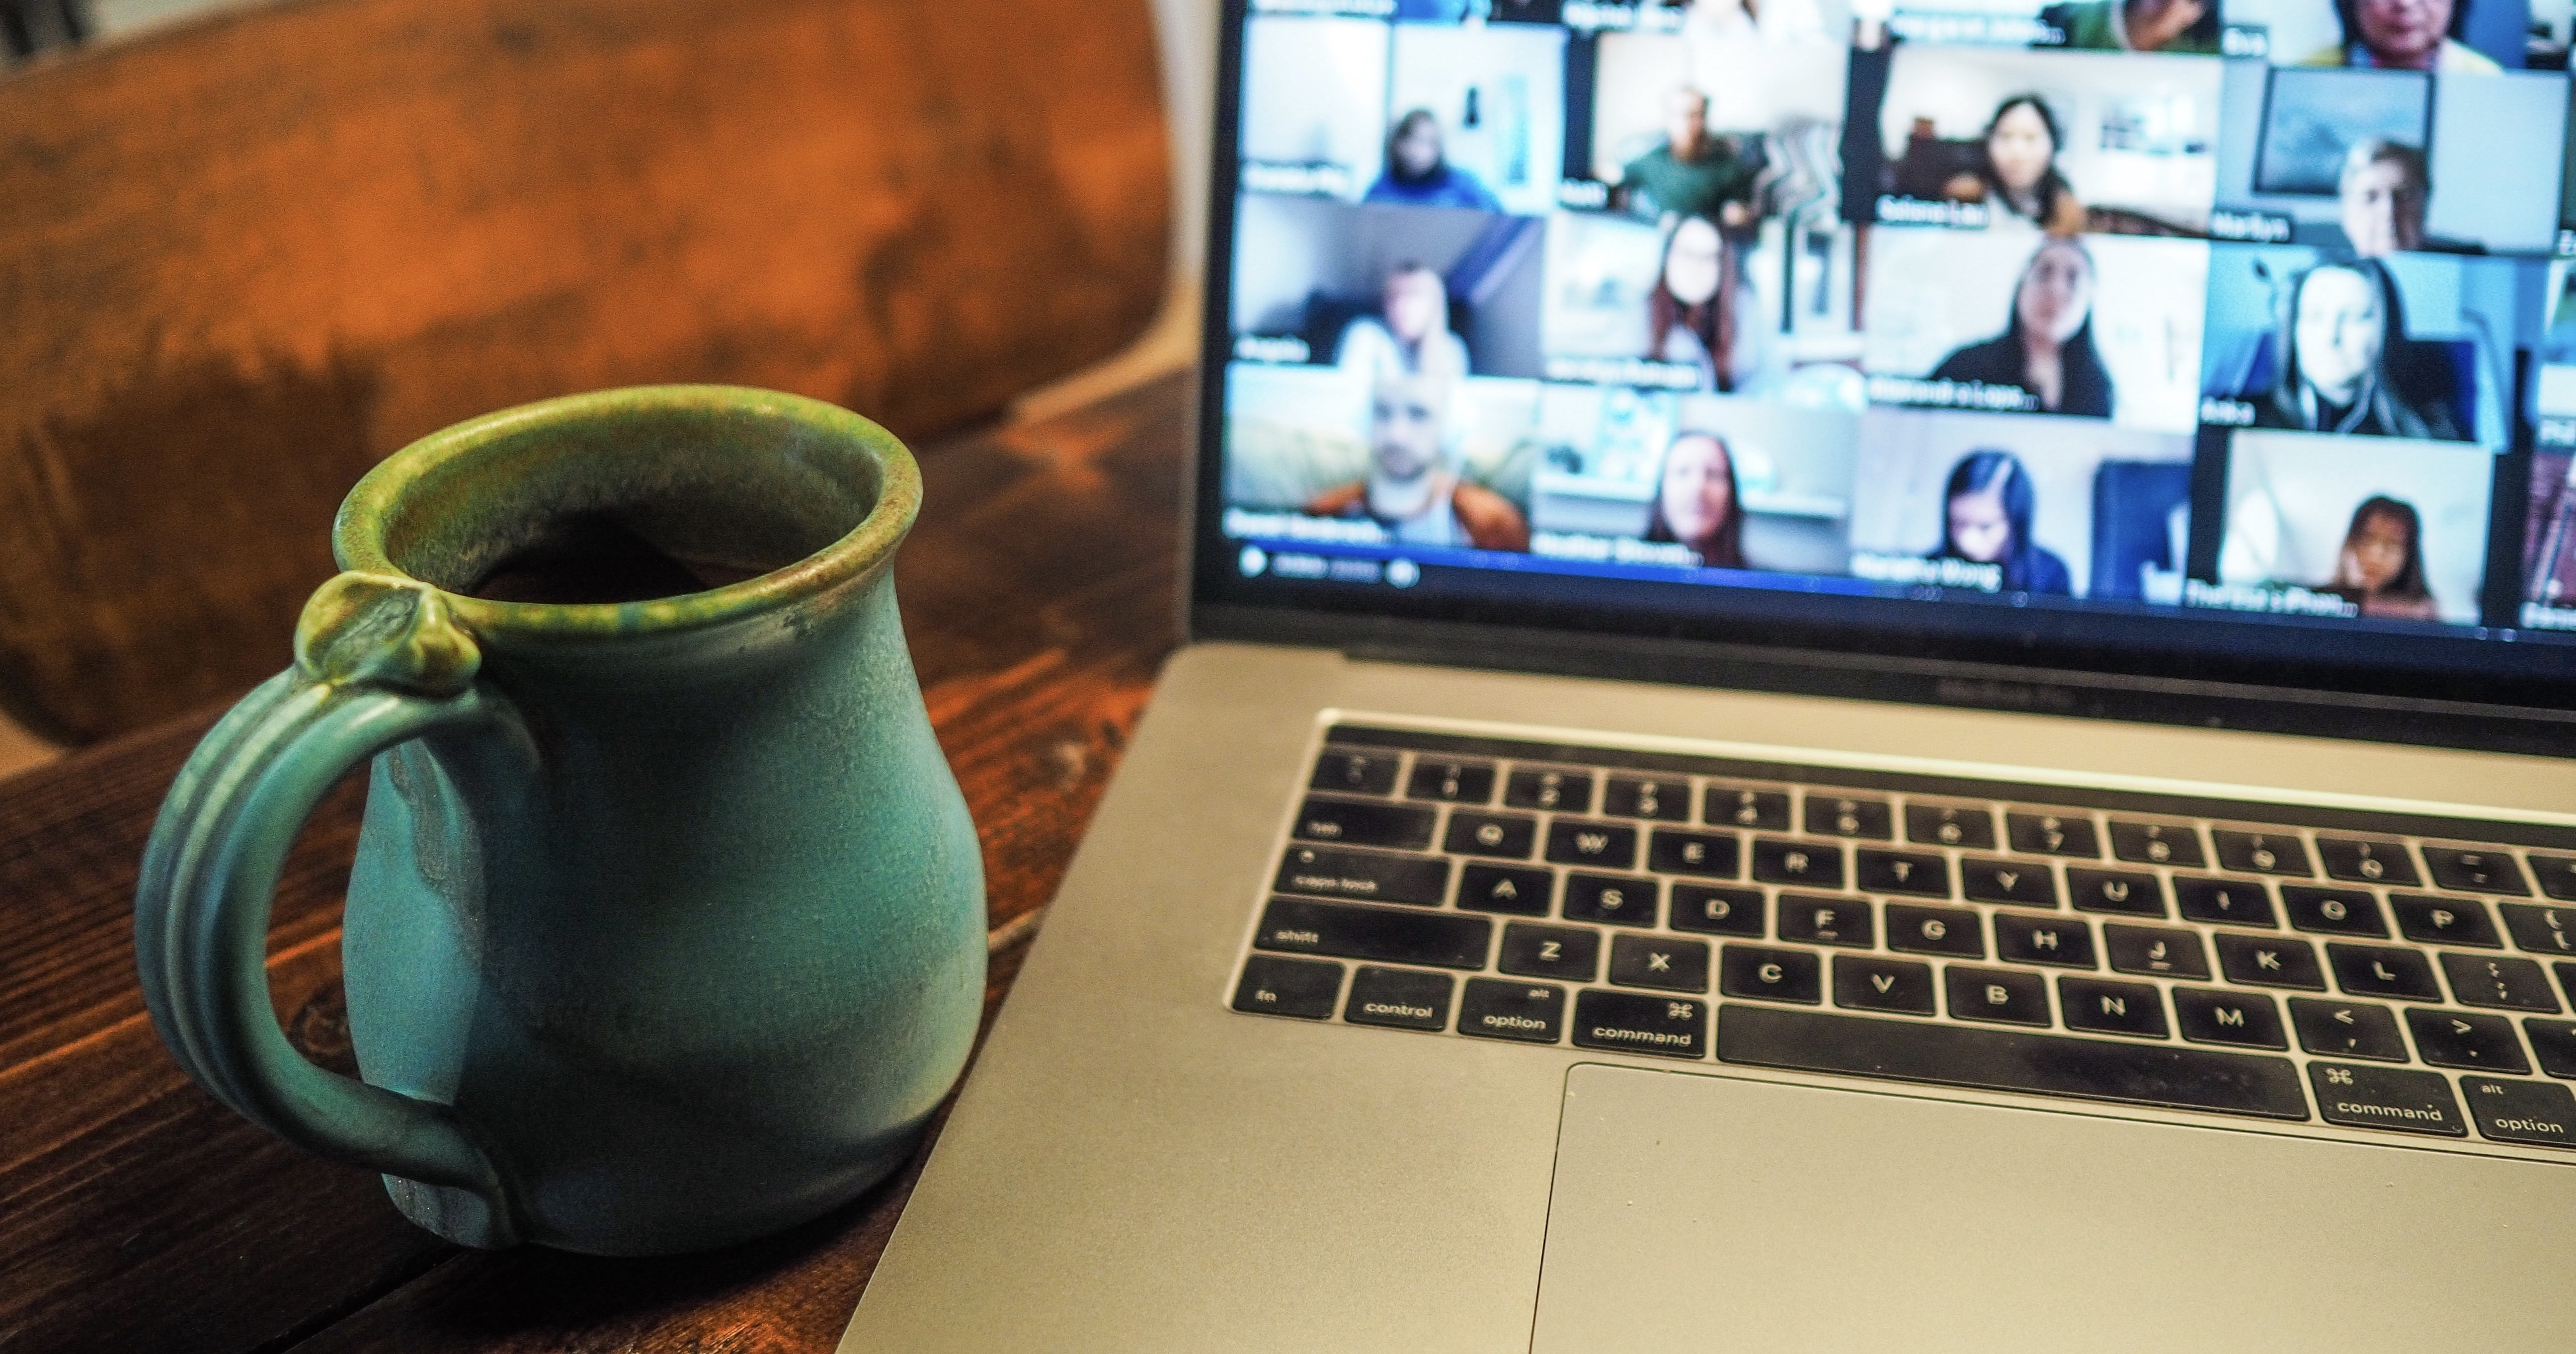 Susanna's Top 5 Tips for Remote Work